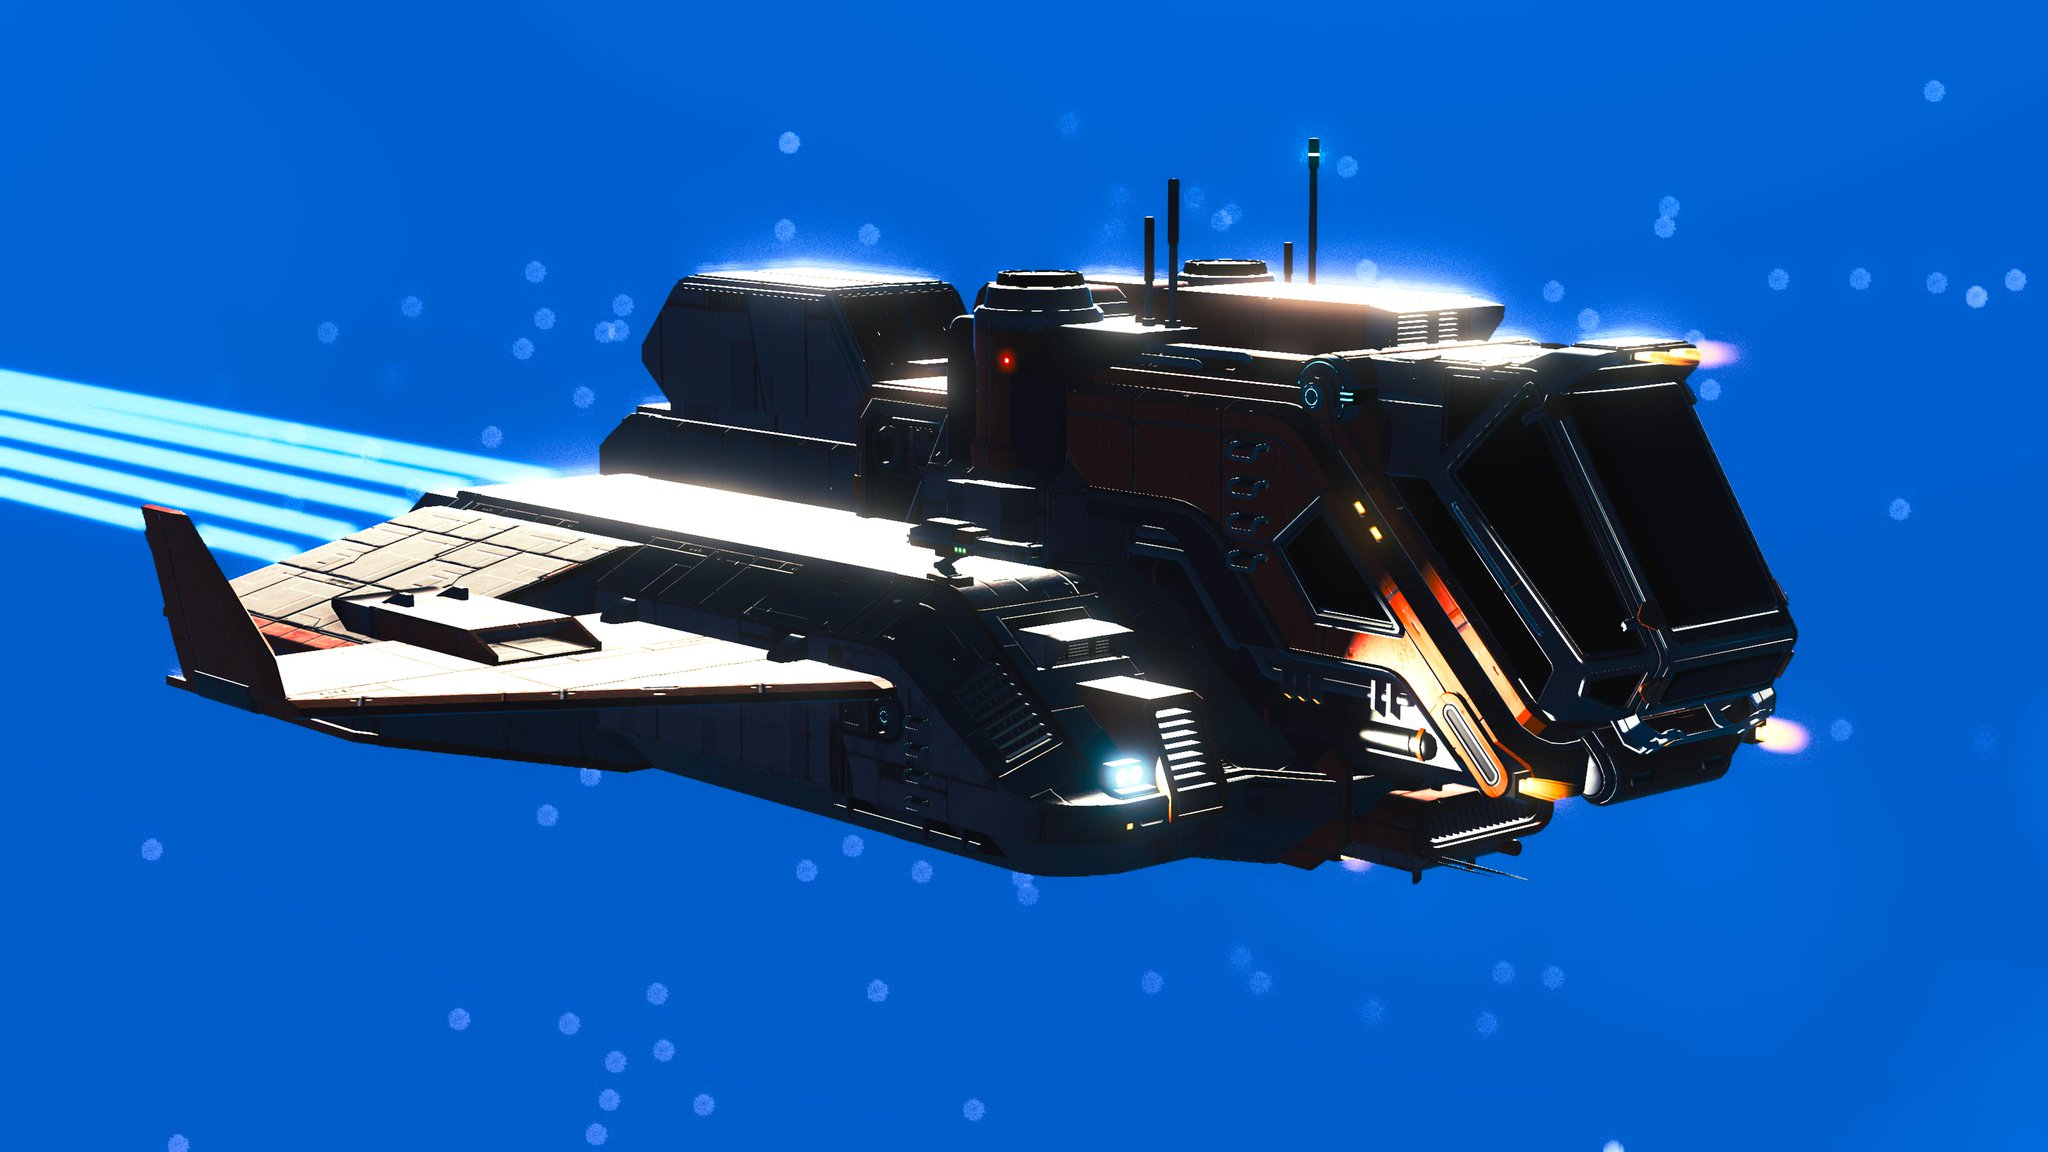 A shuttle craft from No Man's Sky